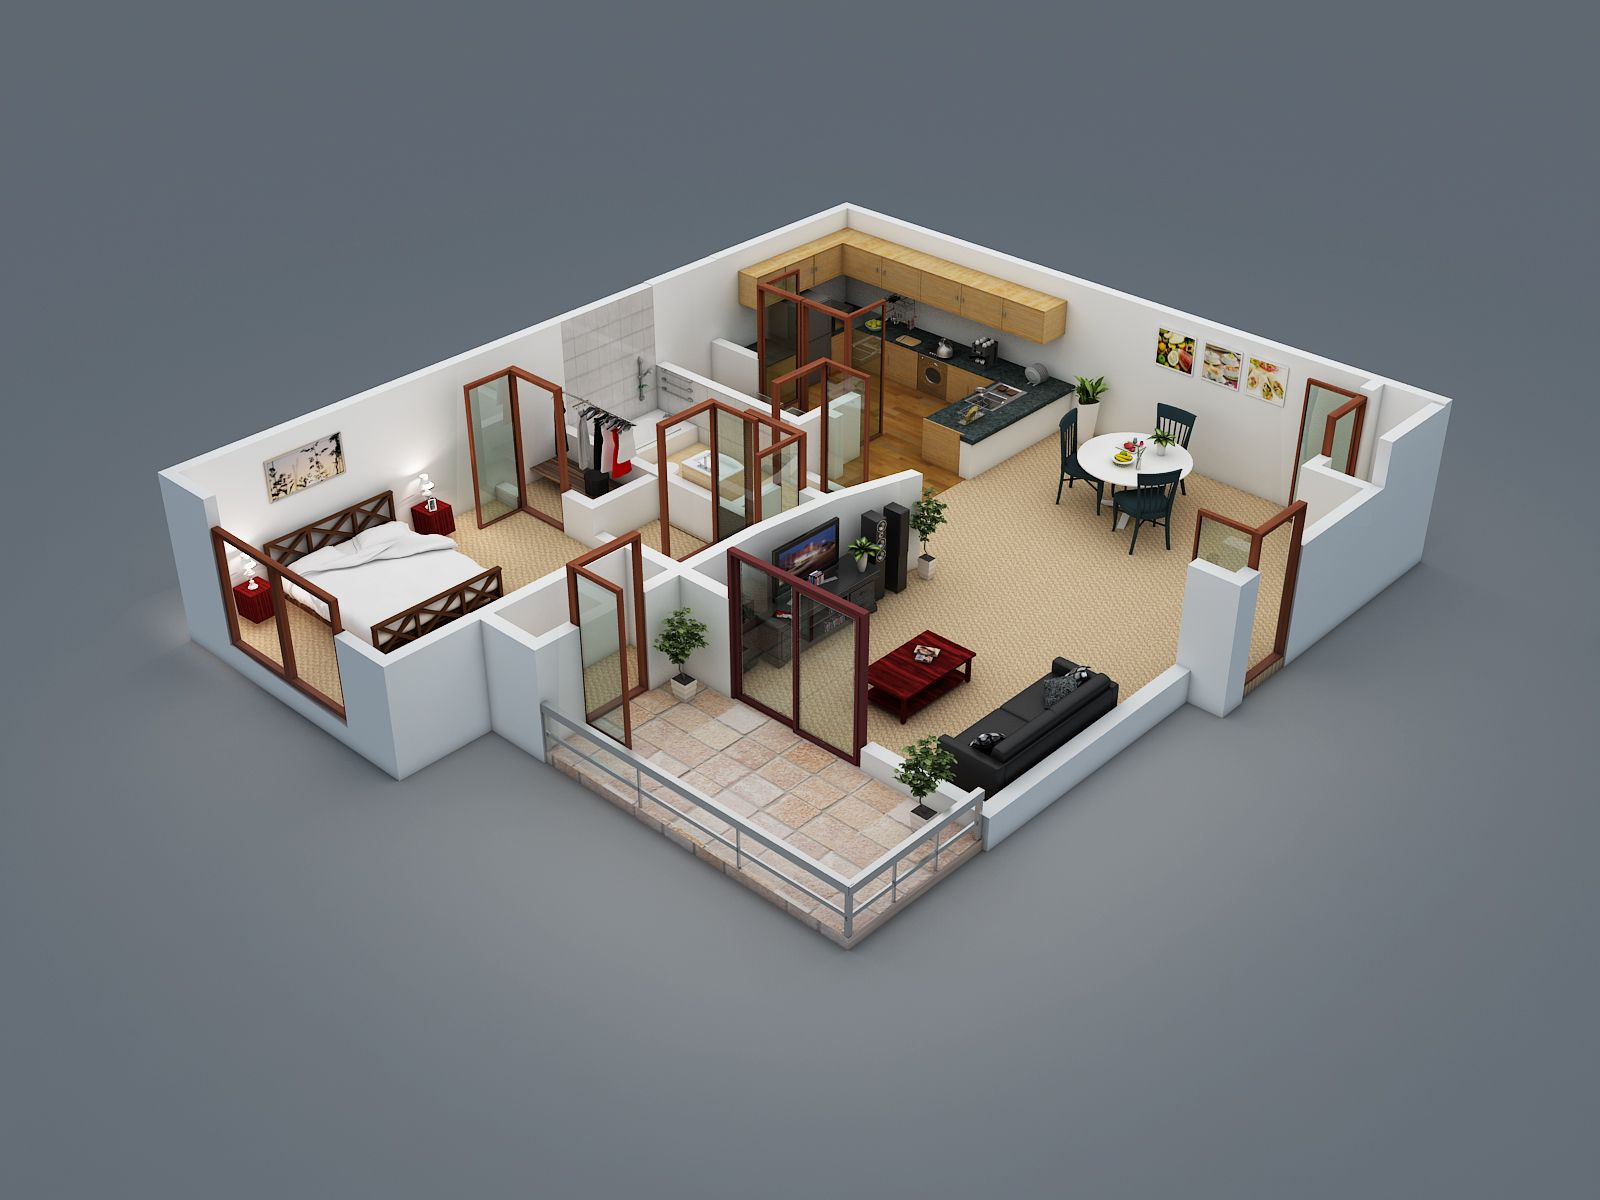 3d floor plans wazo communications apa pinterest 3d architectural floor plans